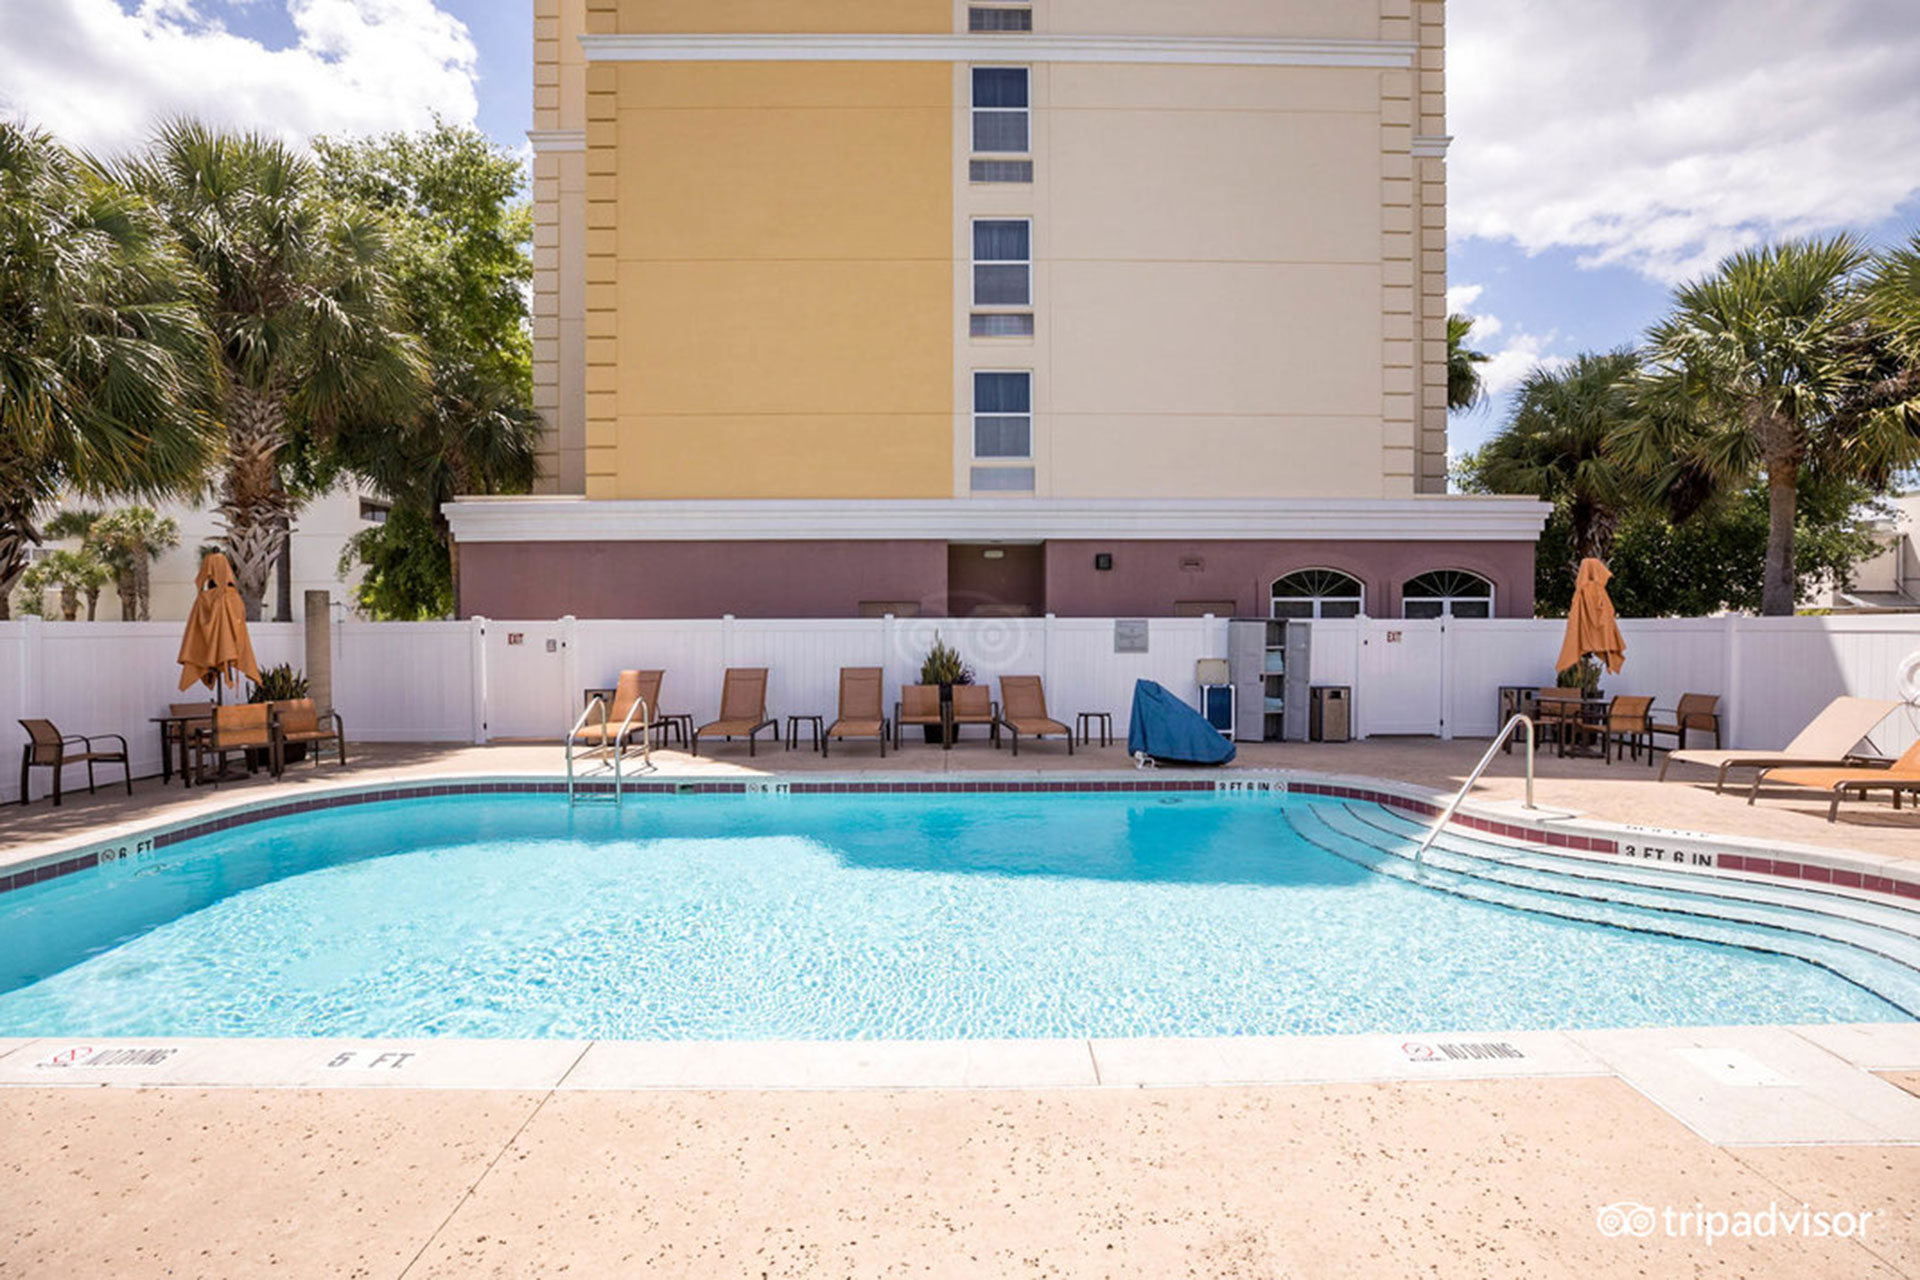 Pool at the Fairfield Inn and Suites Lake Buena Vista; TripAdvisor Expert Photo